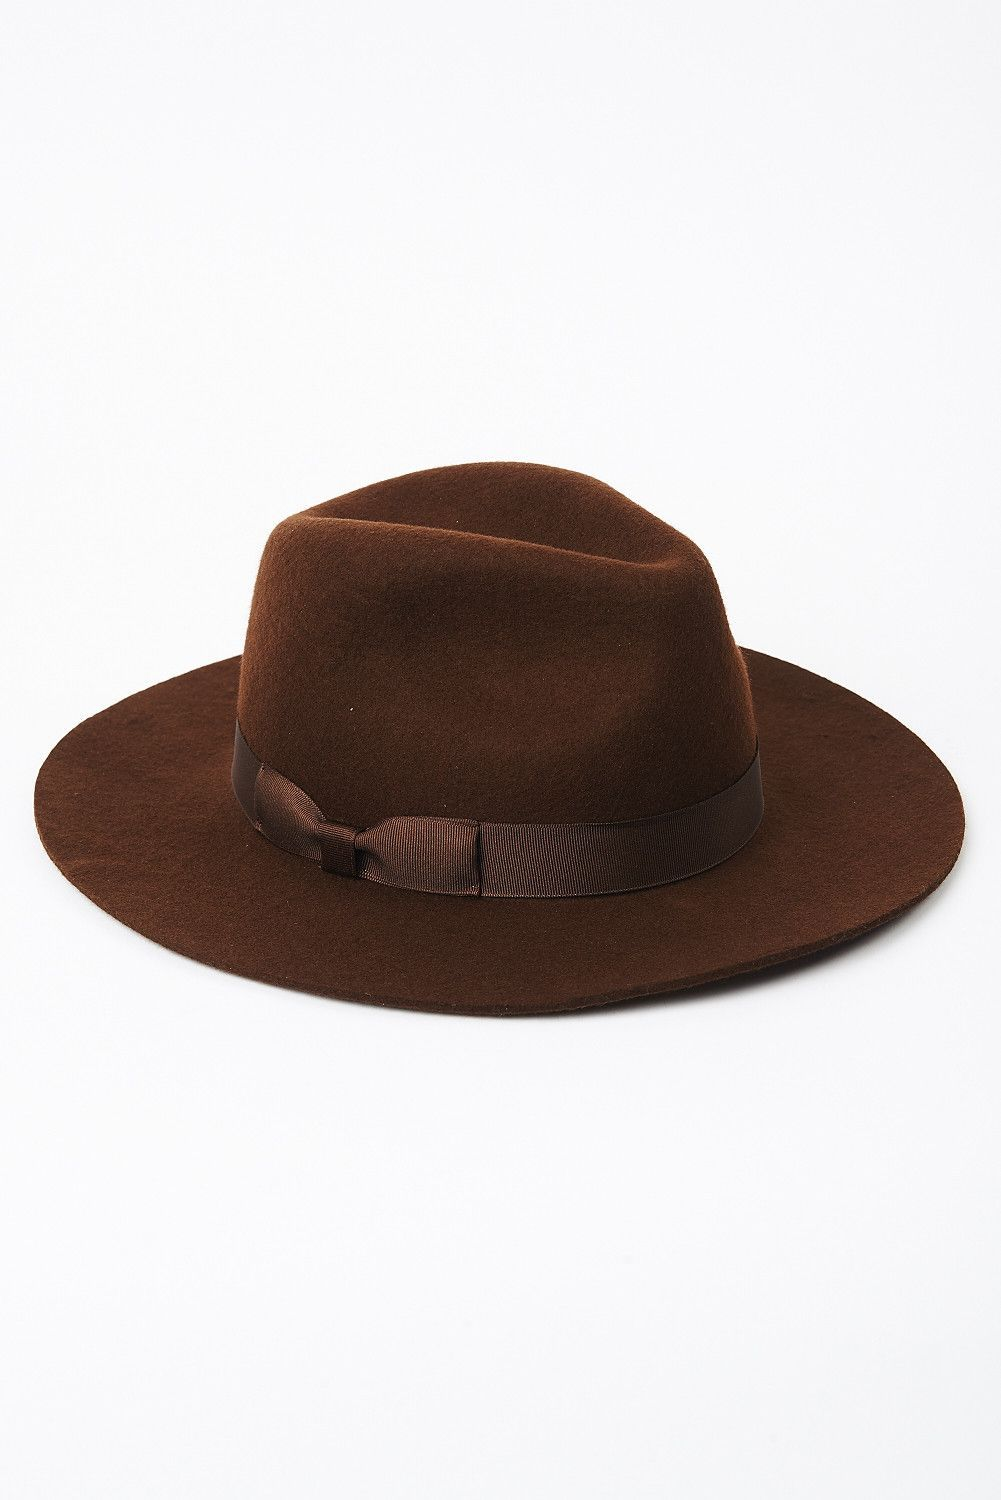 Chocolate brown structured soft wool fedora by Lack of Color ... cb97d387642